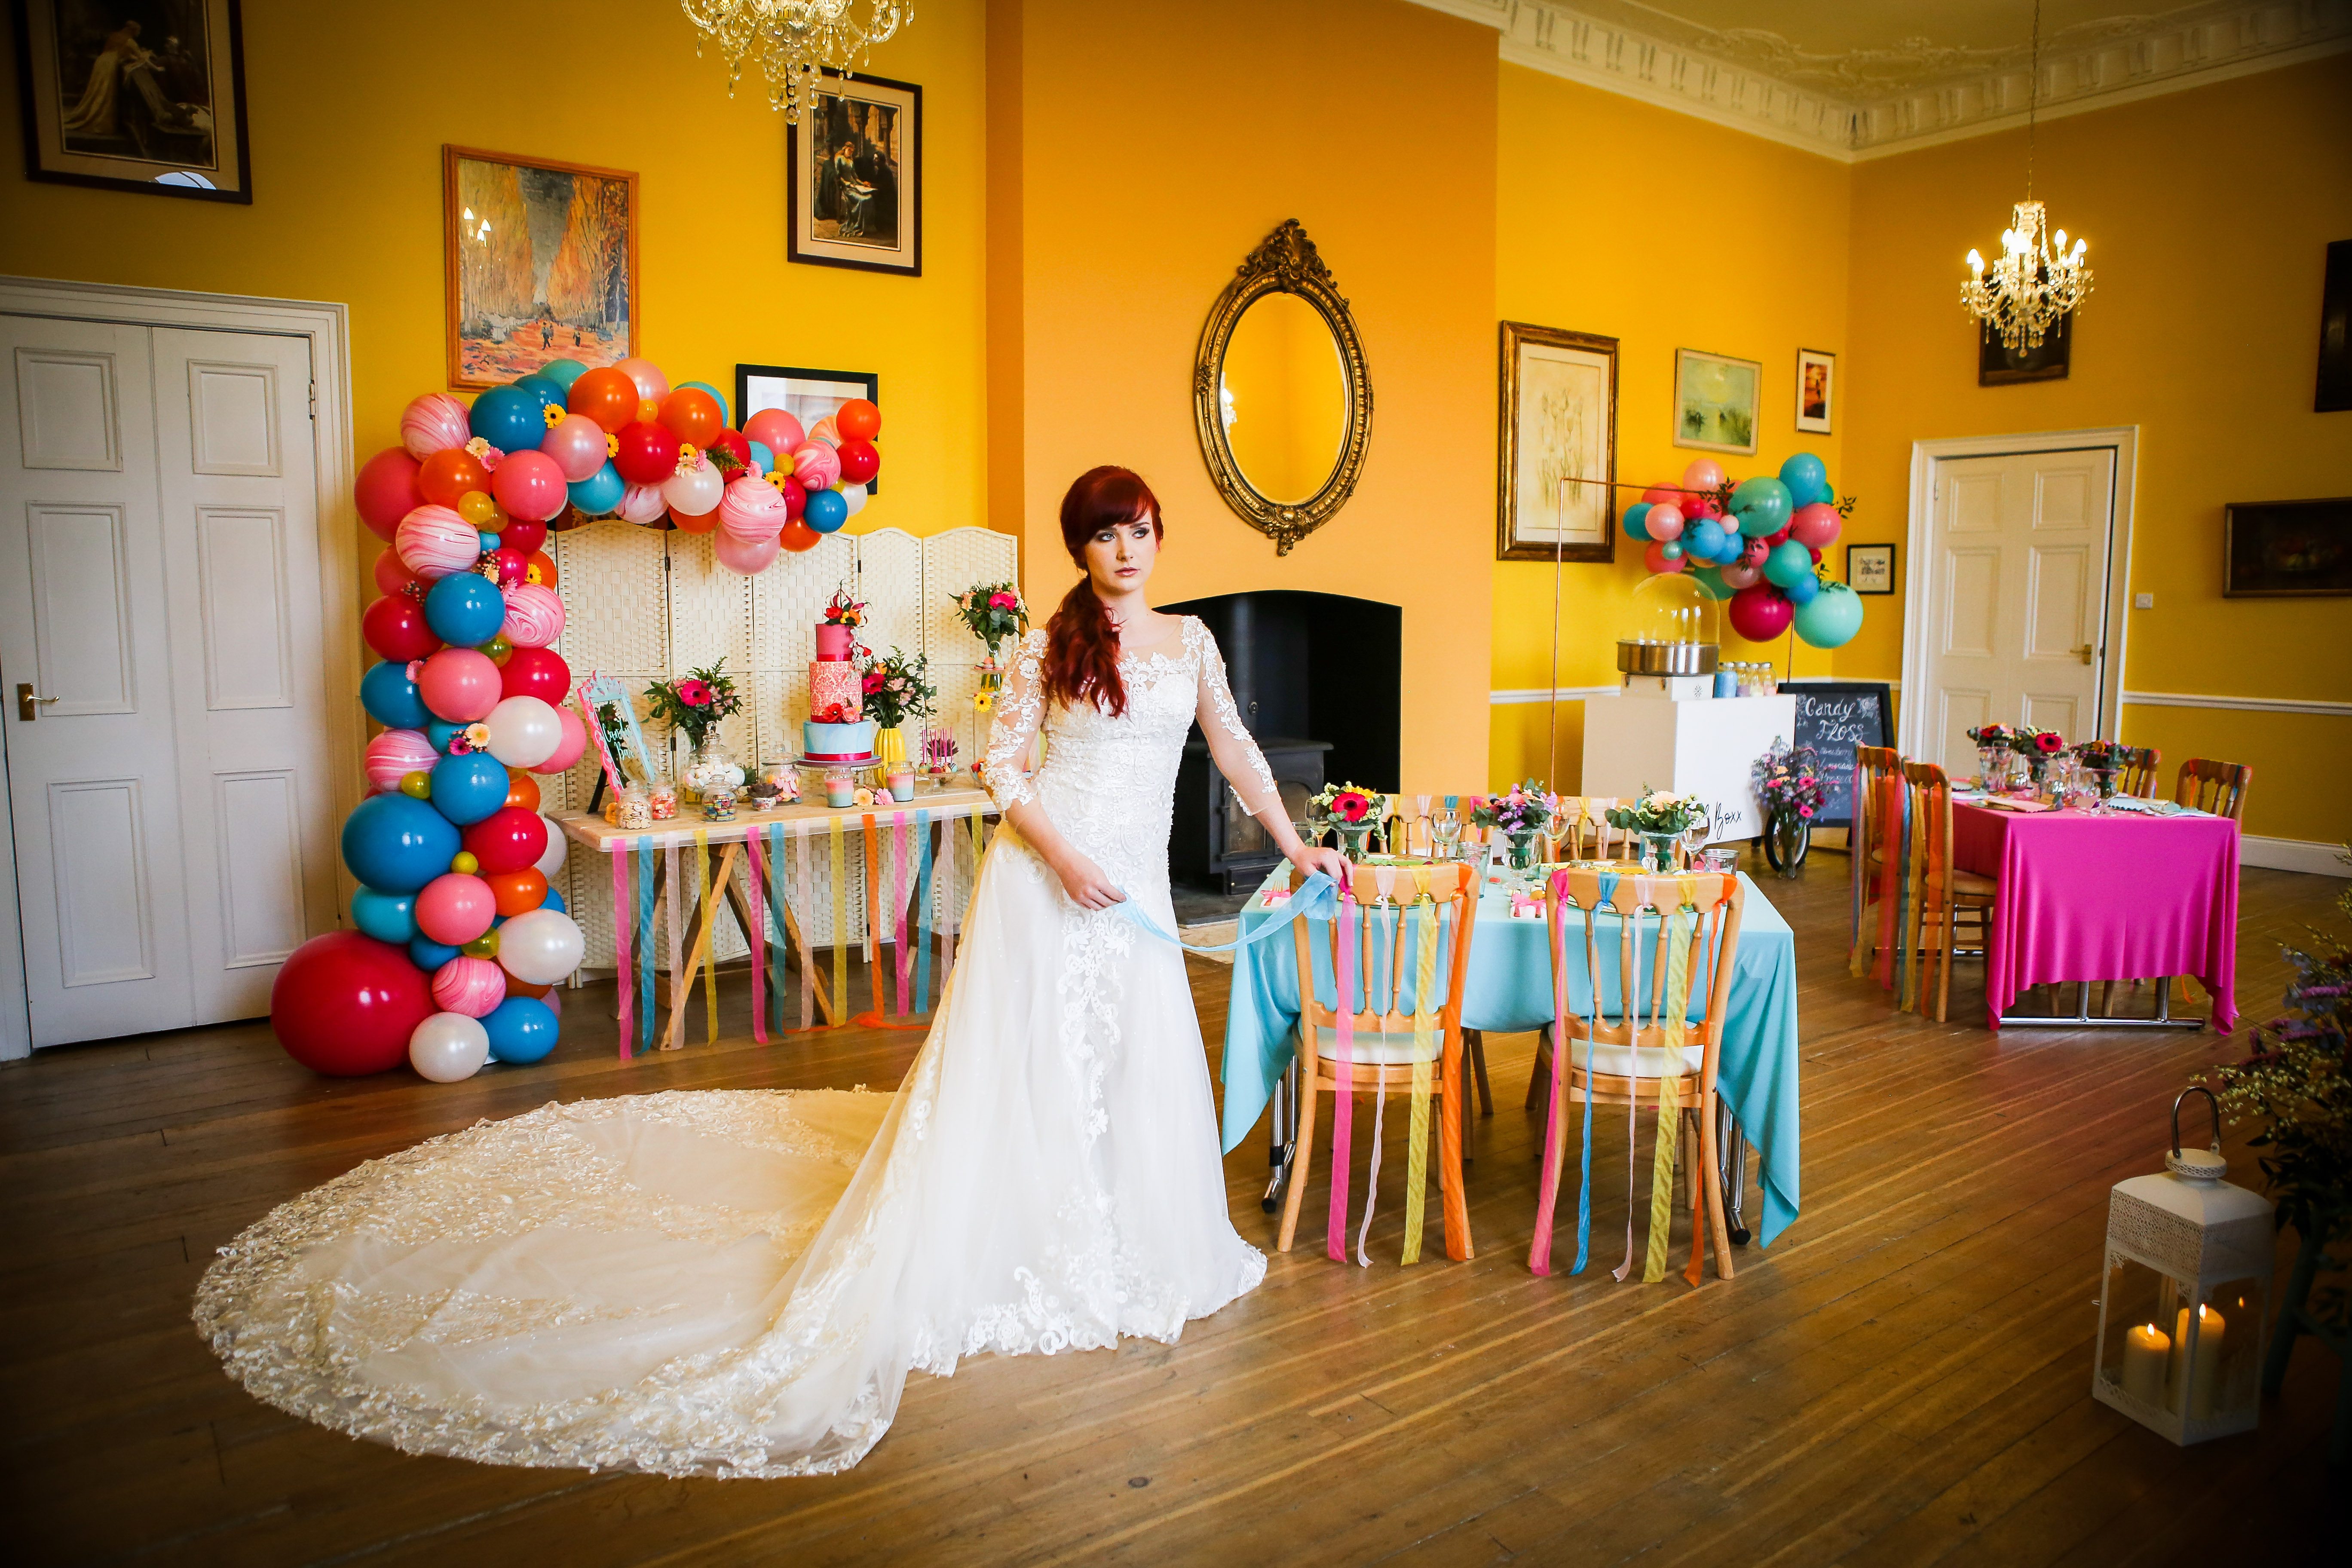 Bride stood by cake table in long train wedding dress